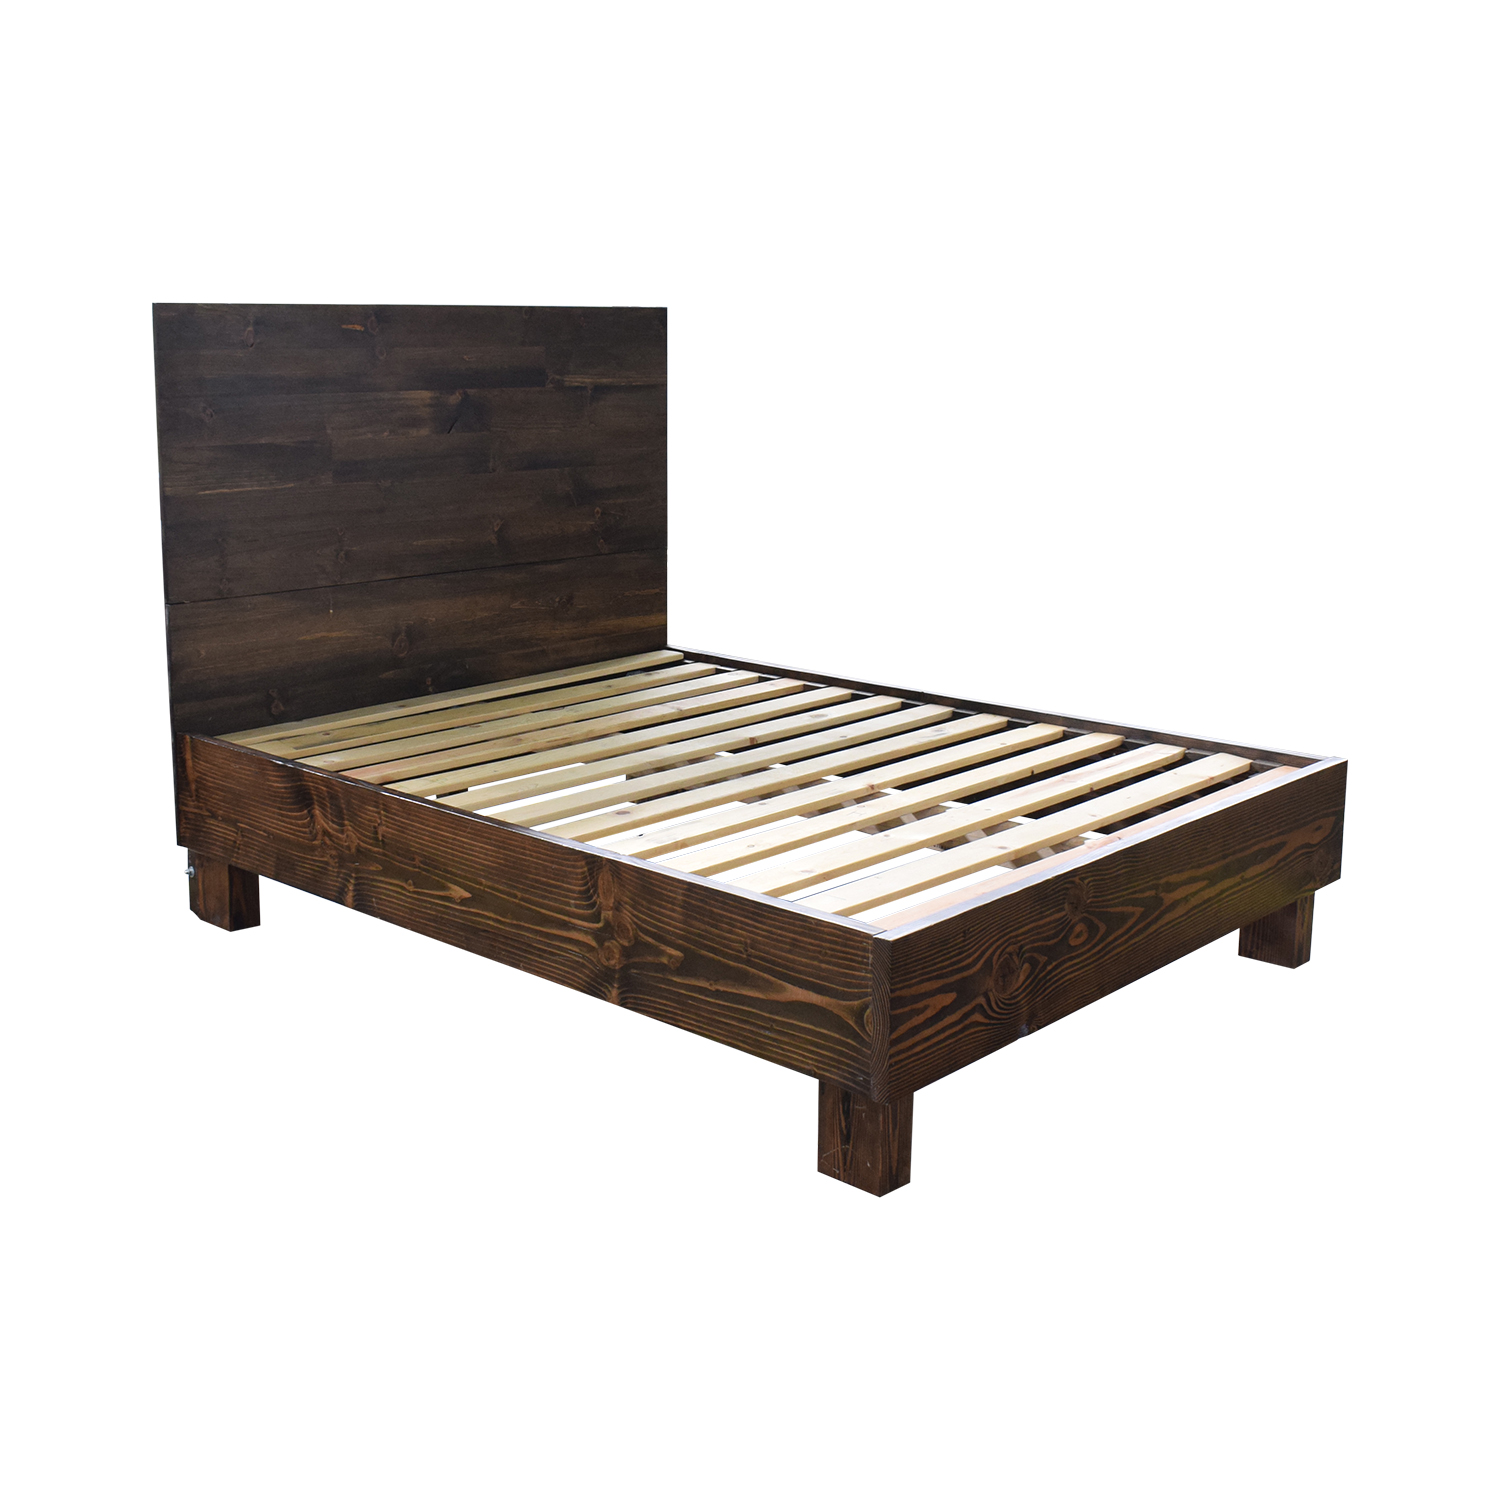 Etsy Etsy Wooden Queen Bed Frame on sale